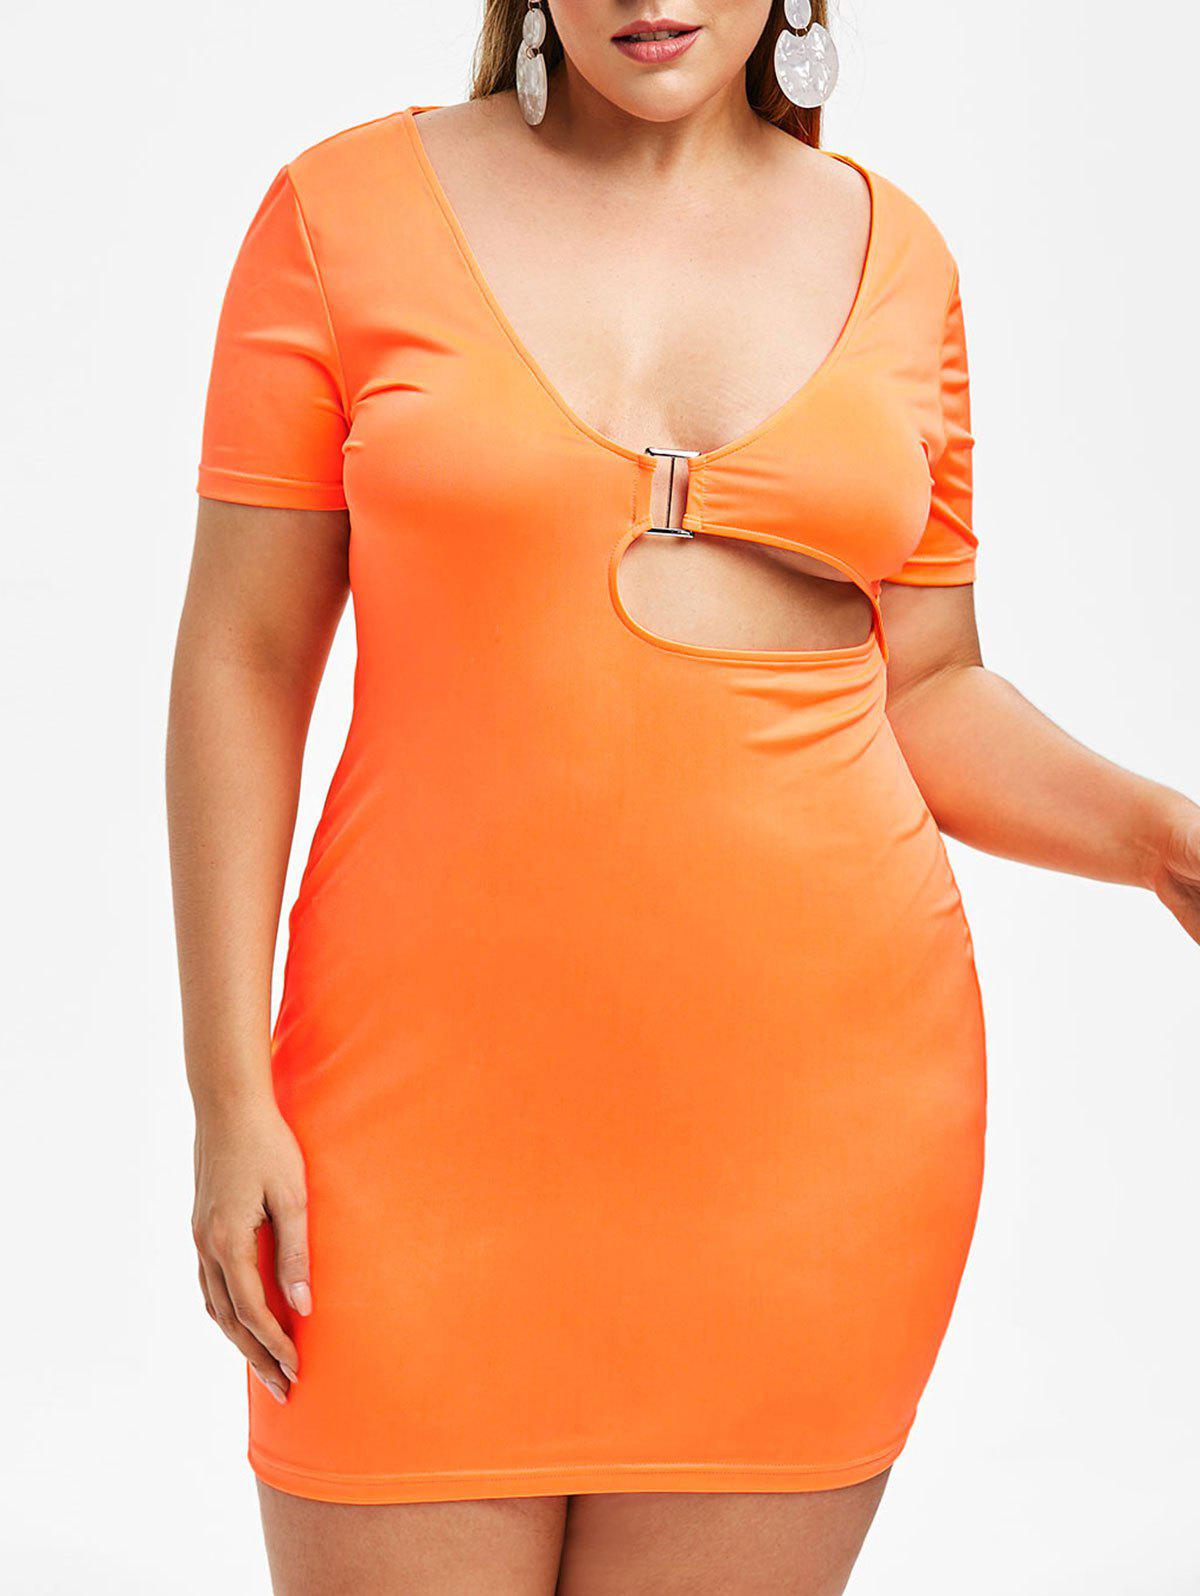 Buy Rosegal Plus Size Plunge Neon Cut Out Fitted Dress